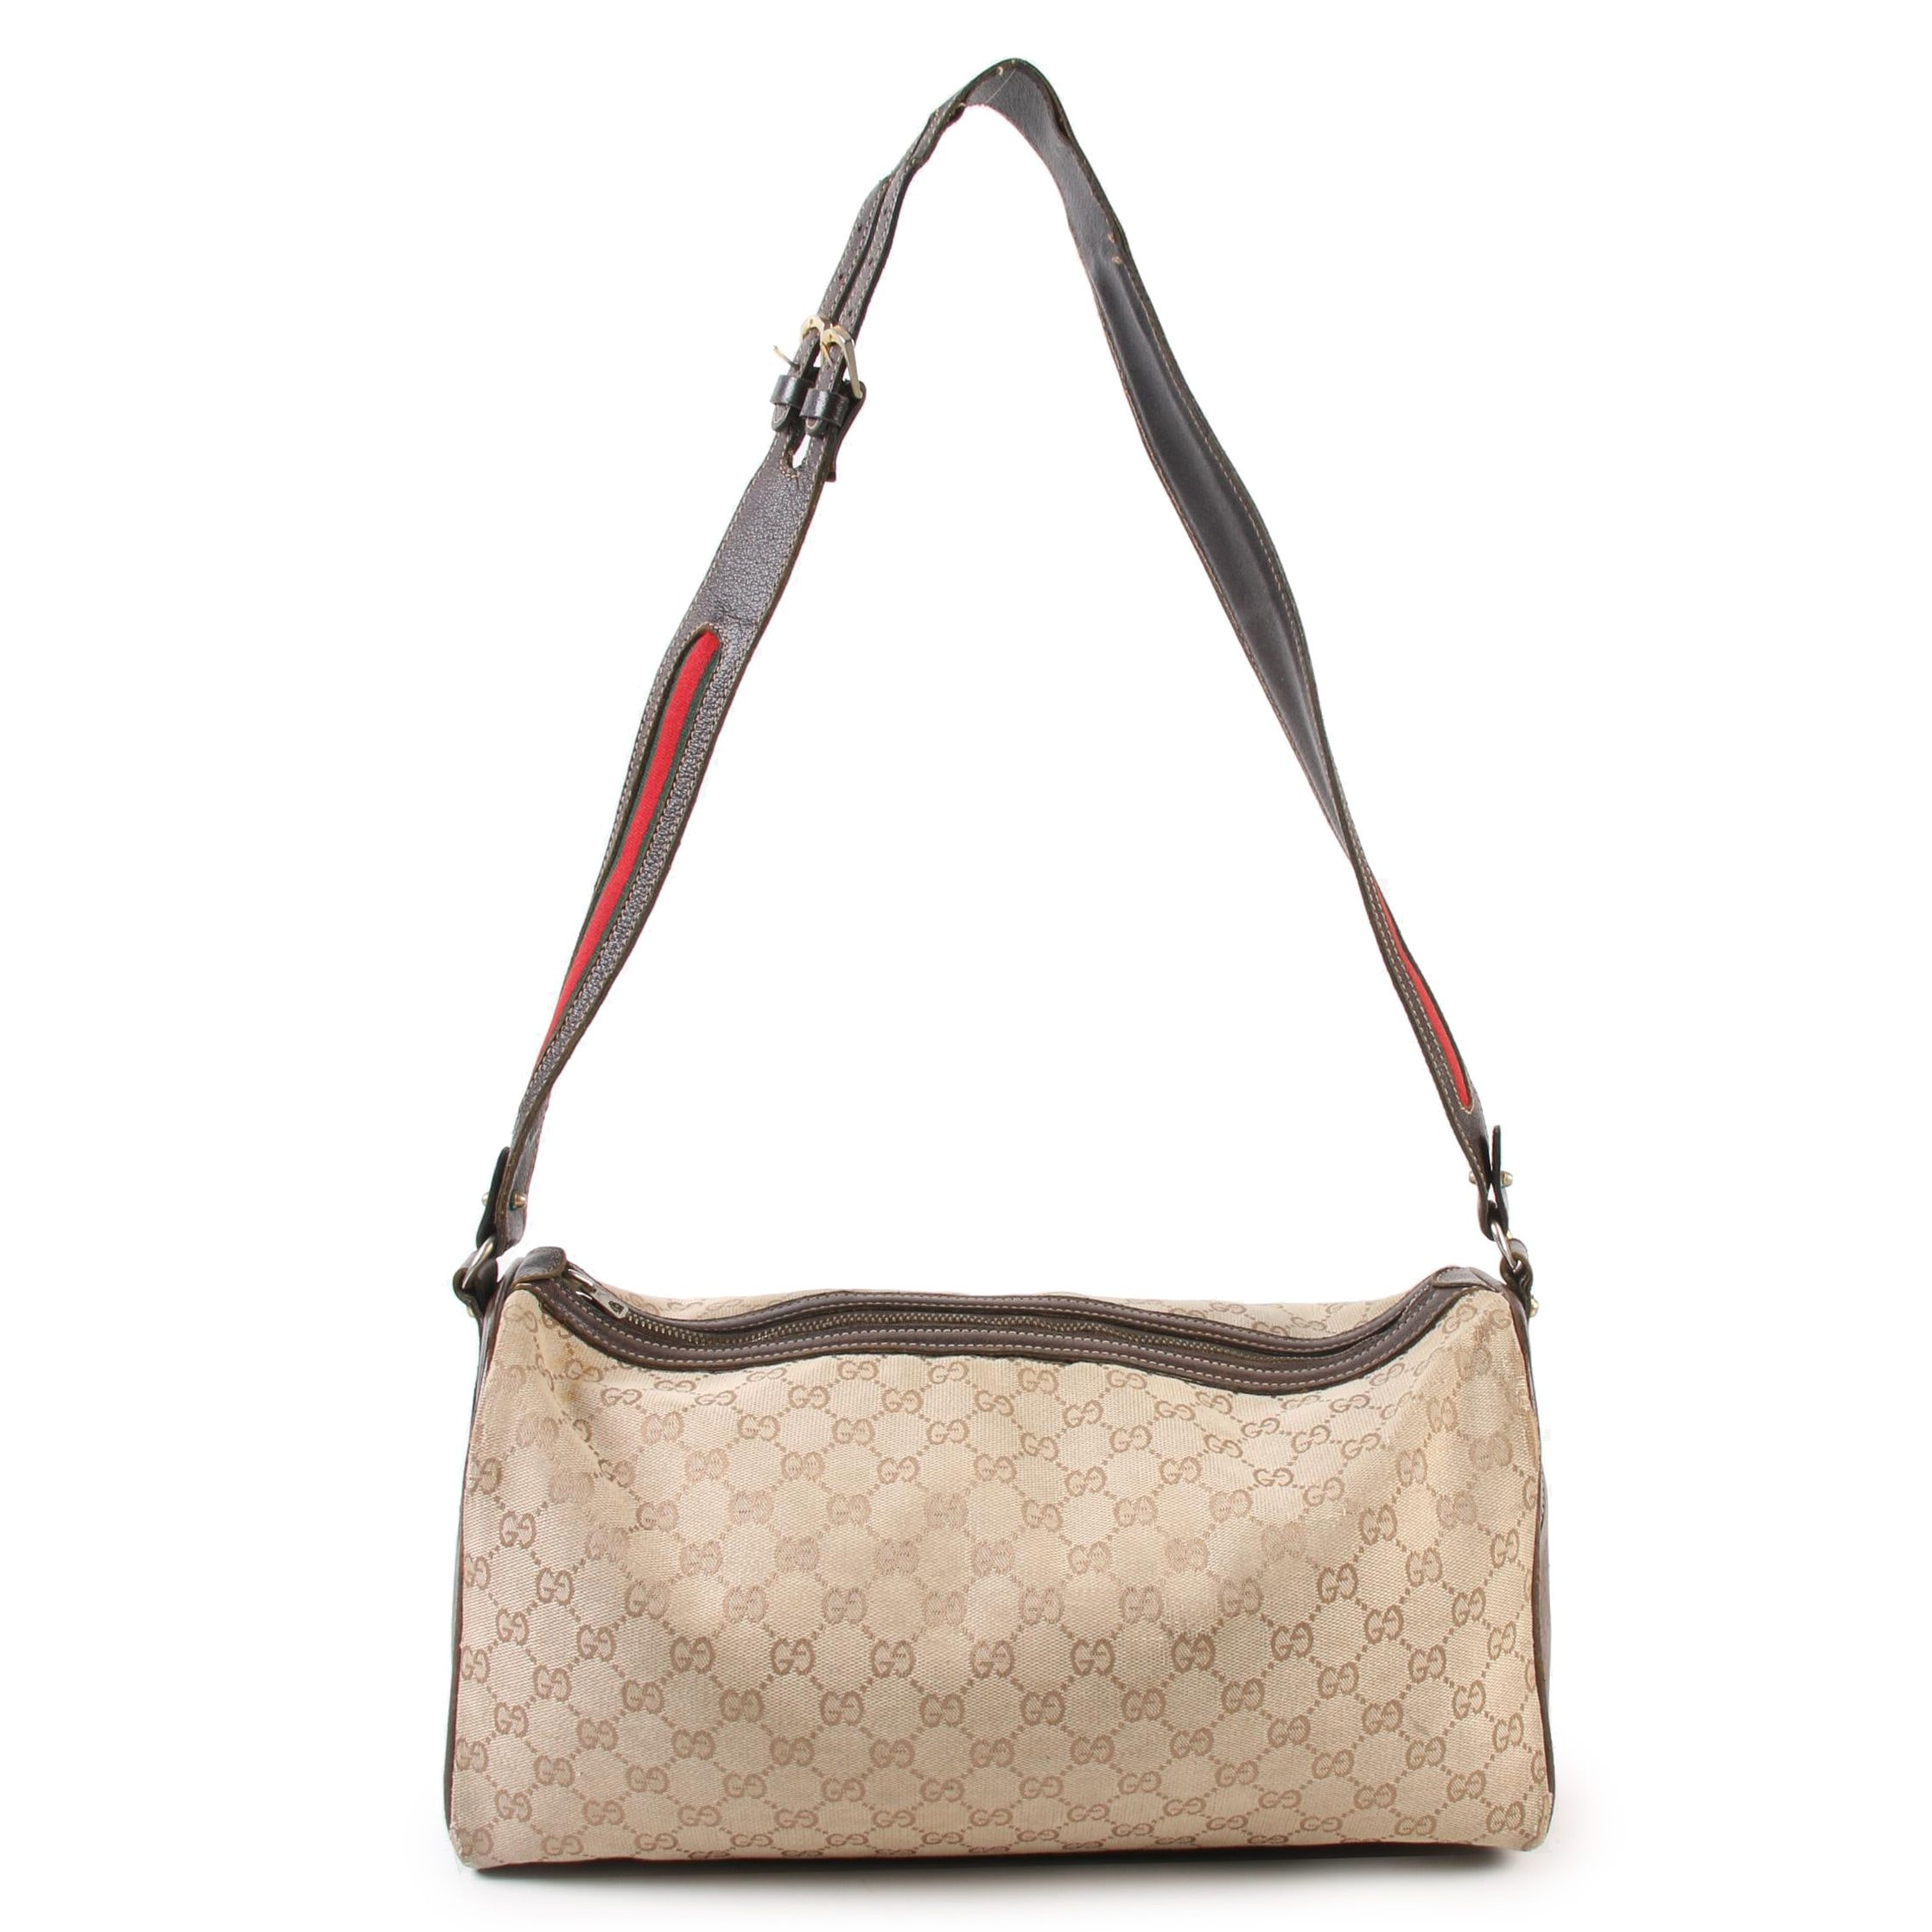 Gucci Travel Bag in GG Canvas and Leather with Web Stripe Trim, Vintage